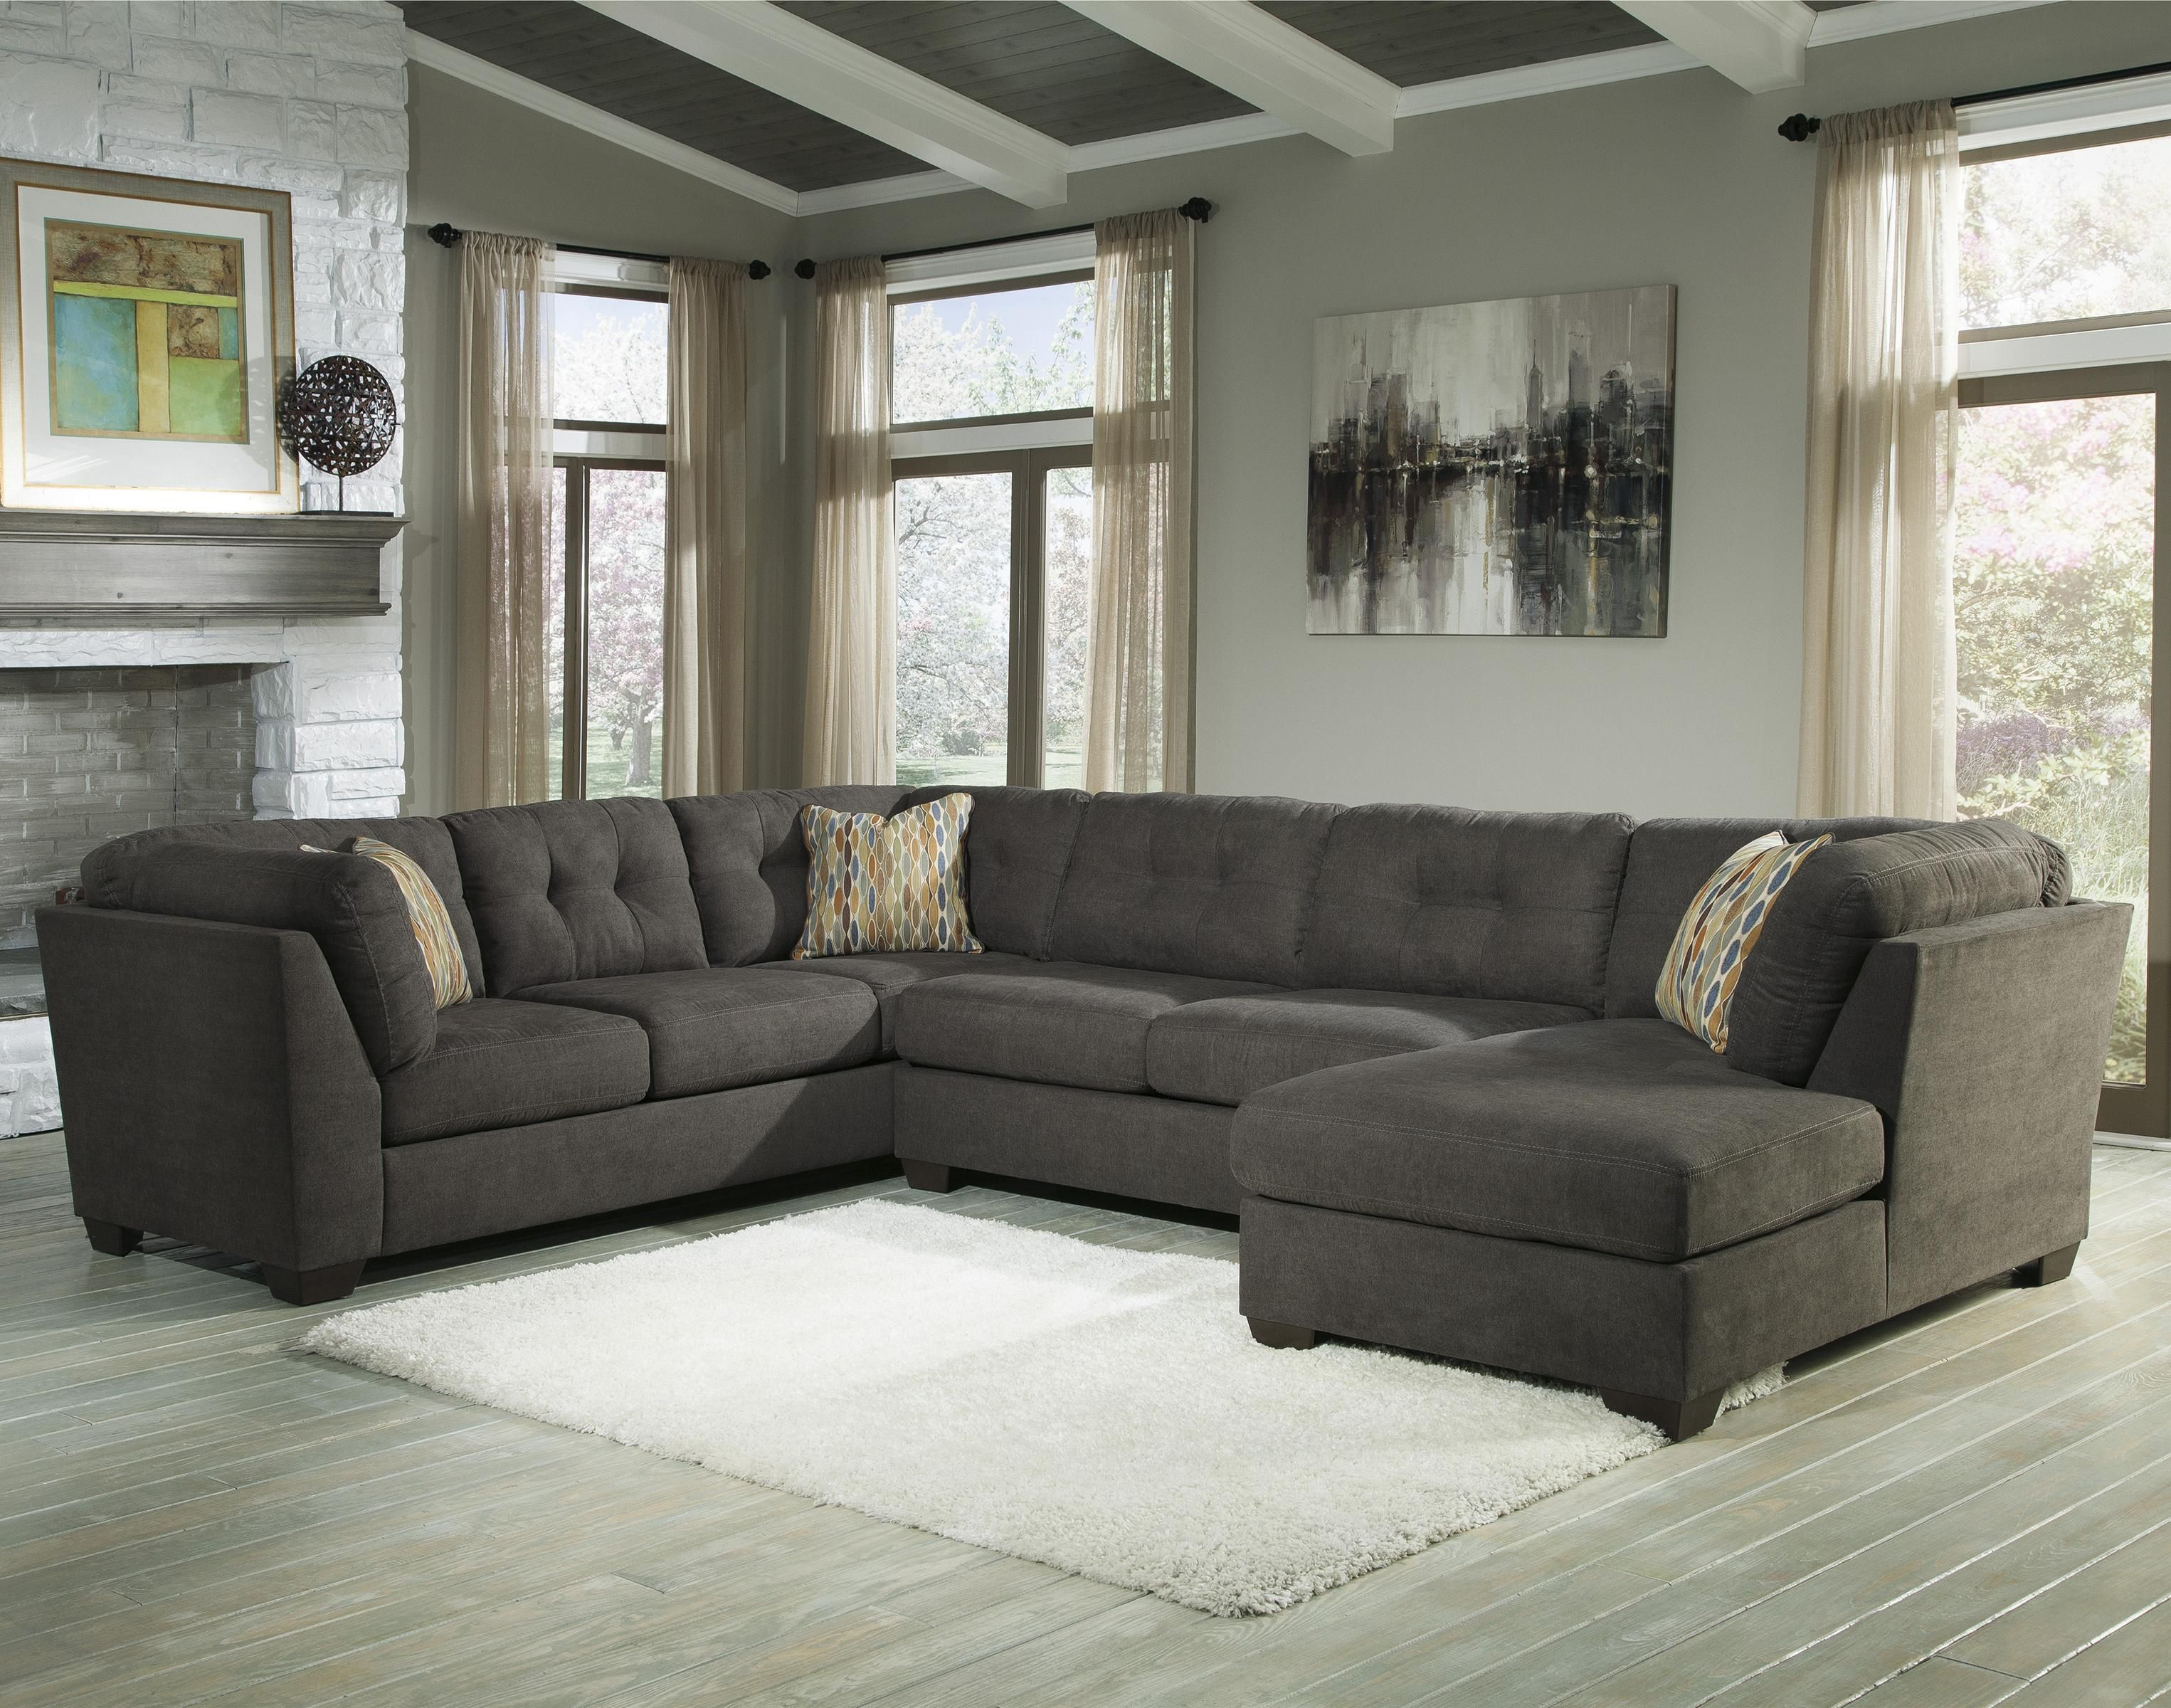 Delta City Steel Piece Modular Sectional With Right Chaise By